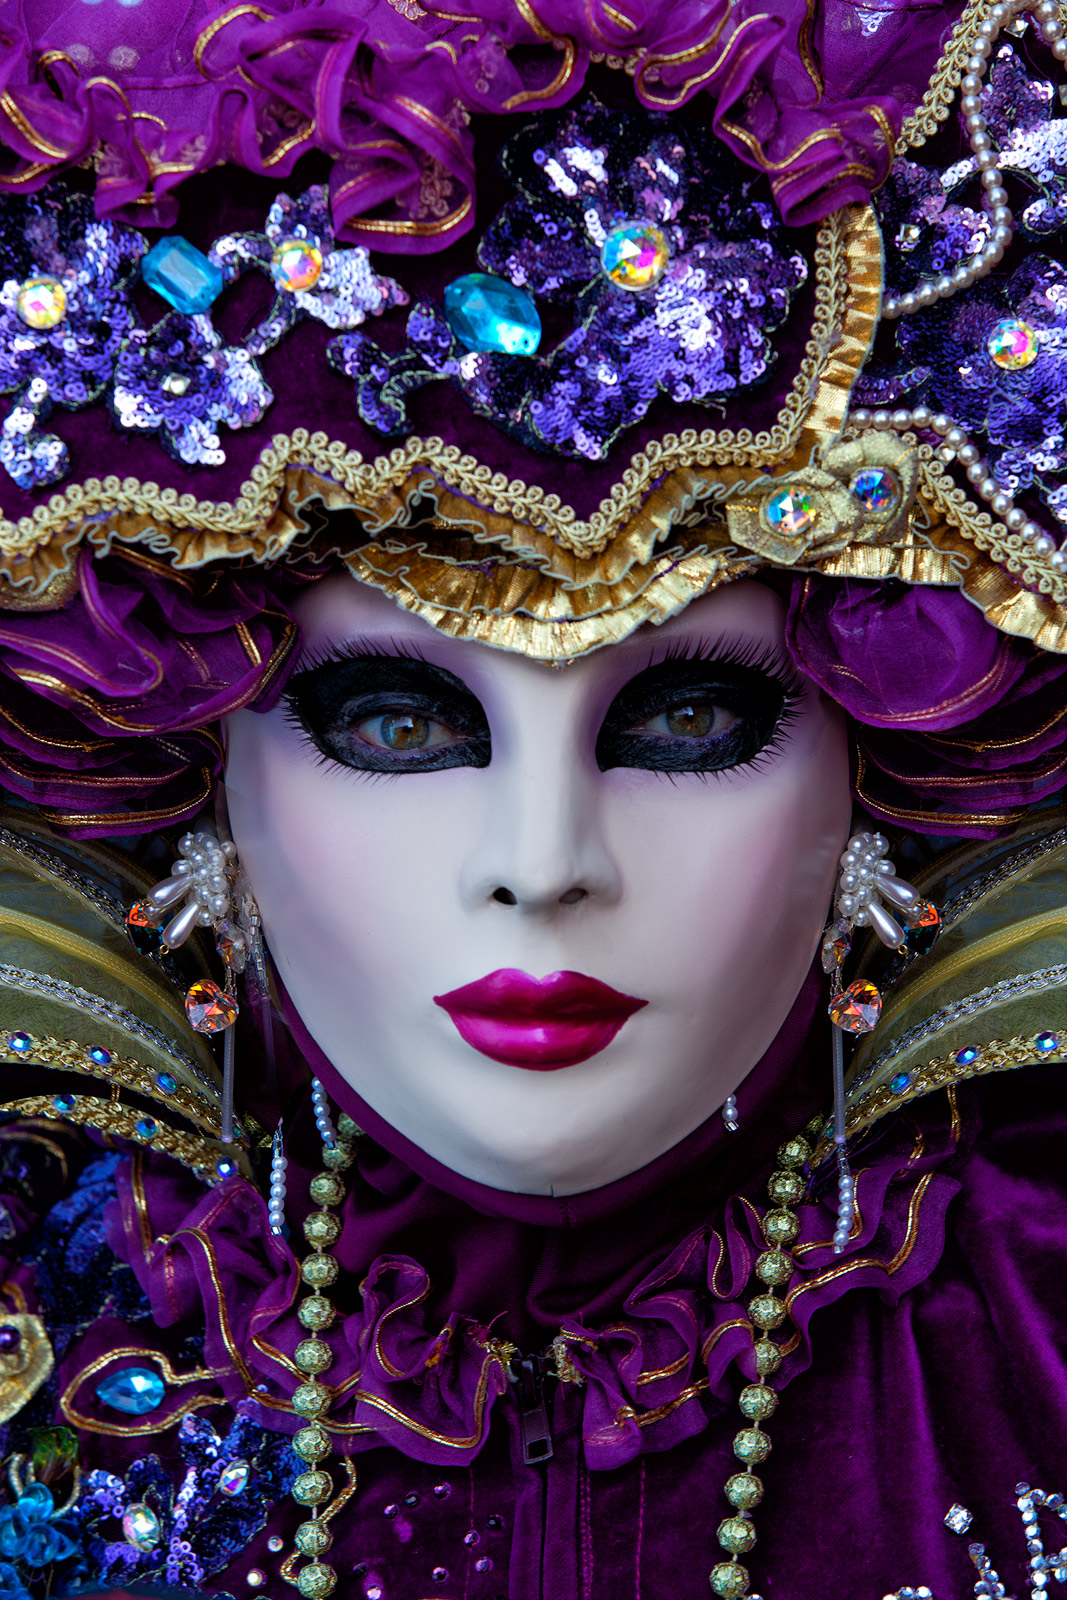 burano, burano island, carnival, celebration, close-up, colorful, costume, europe, italy, macro, mask, party, portrait, purple, venice, vertical, photo